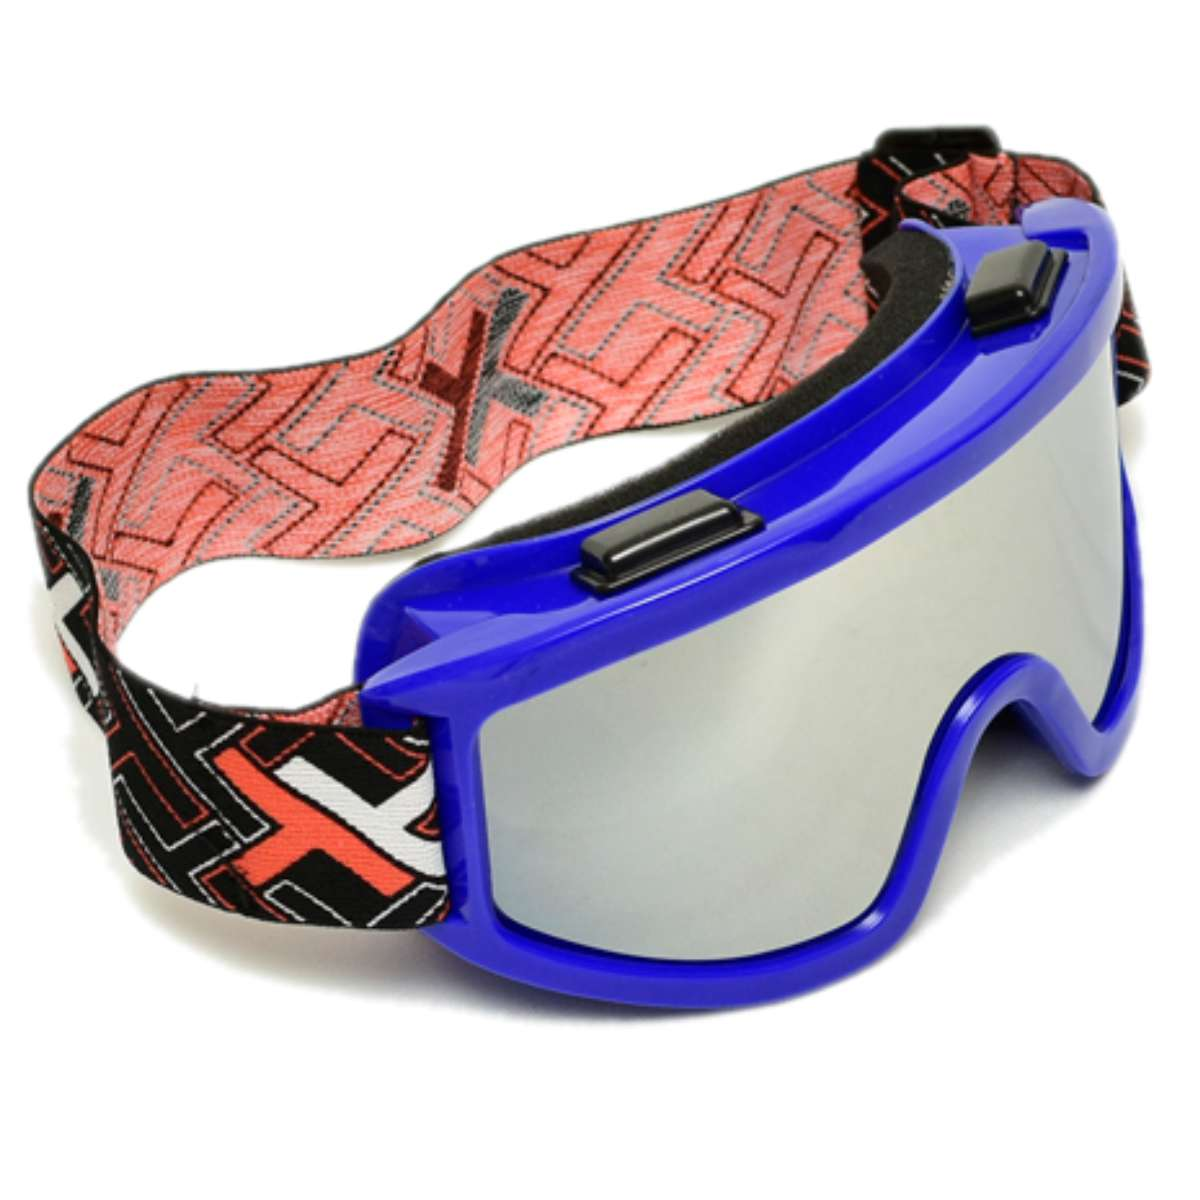 OCULOS CROSS OFF-ROAD MATTOS RACING MX LENTE ESPELHADA AZUL